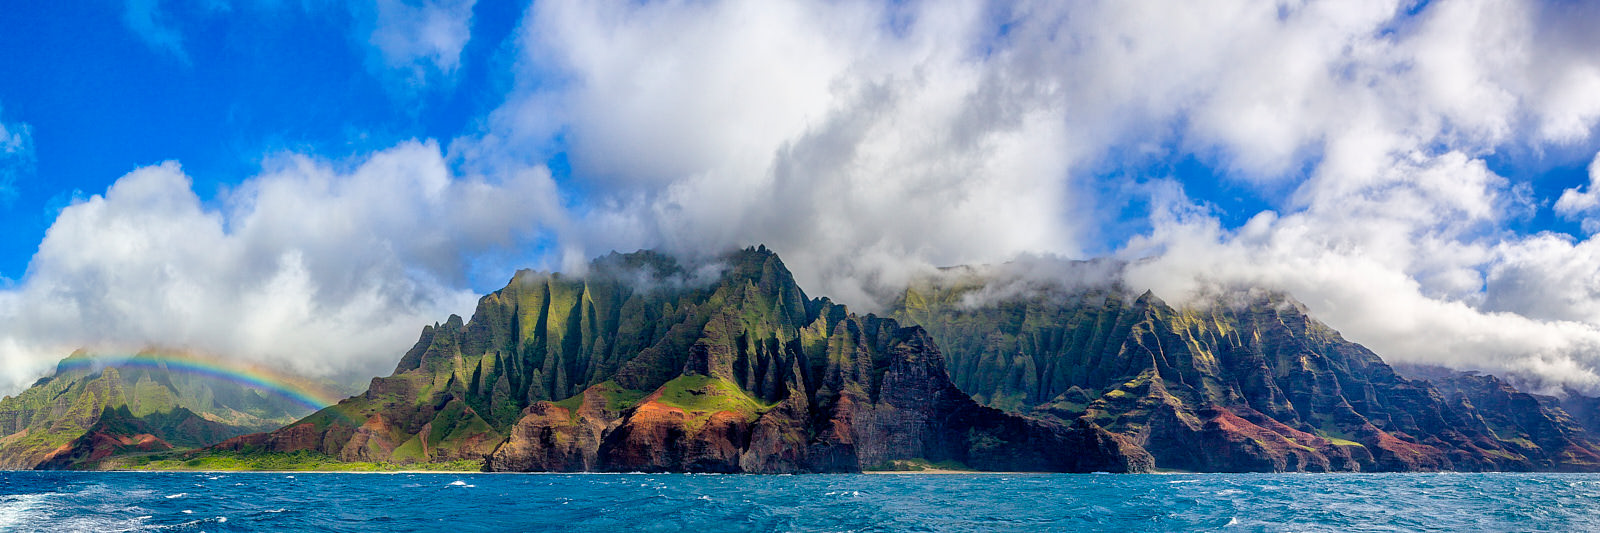 panoramic photo of the Na Pali coastline on the Hawaiian island of Kauai featuring a rainbow, dramatic clouds, and vibrant blue water